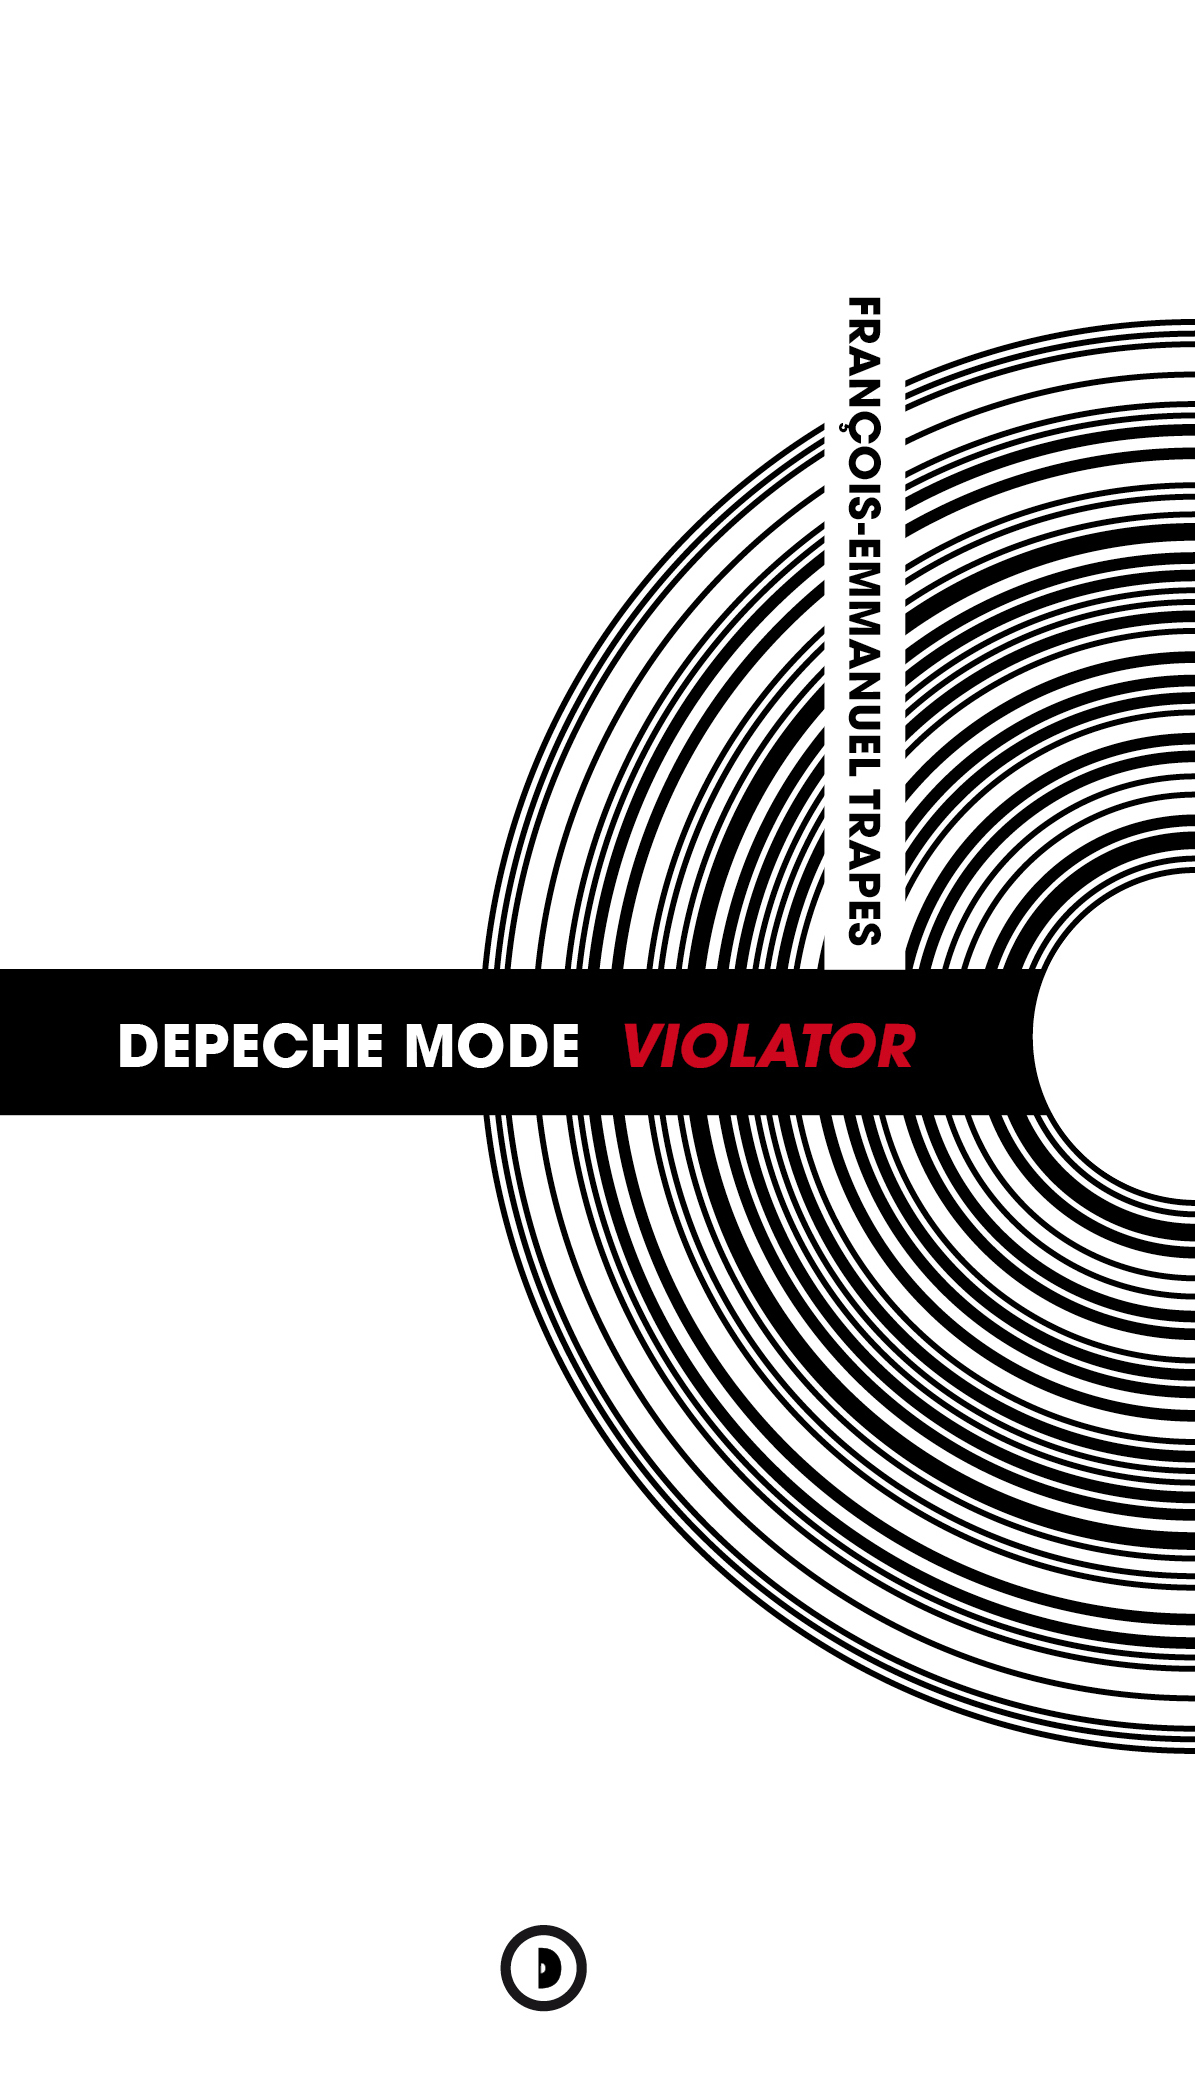 DEPECHE MODE : VIOLATOR